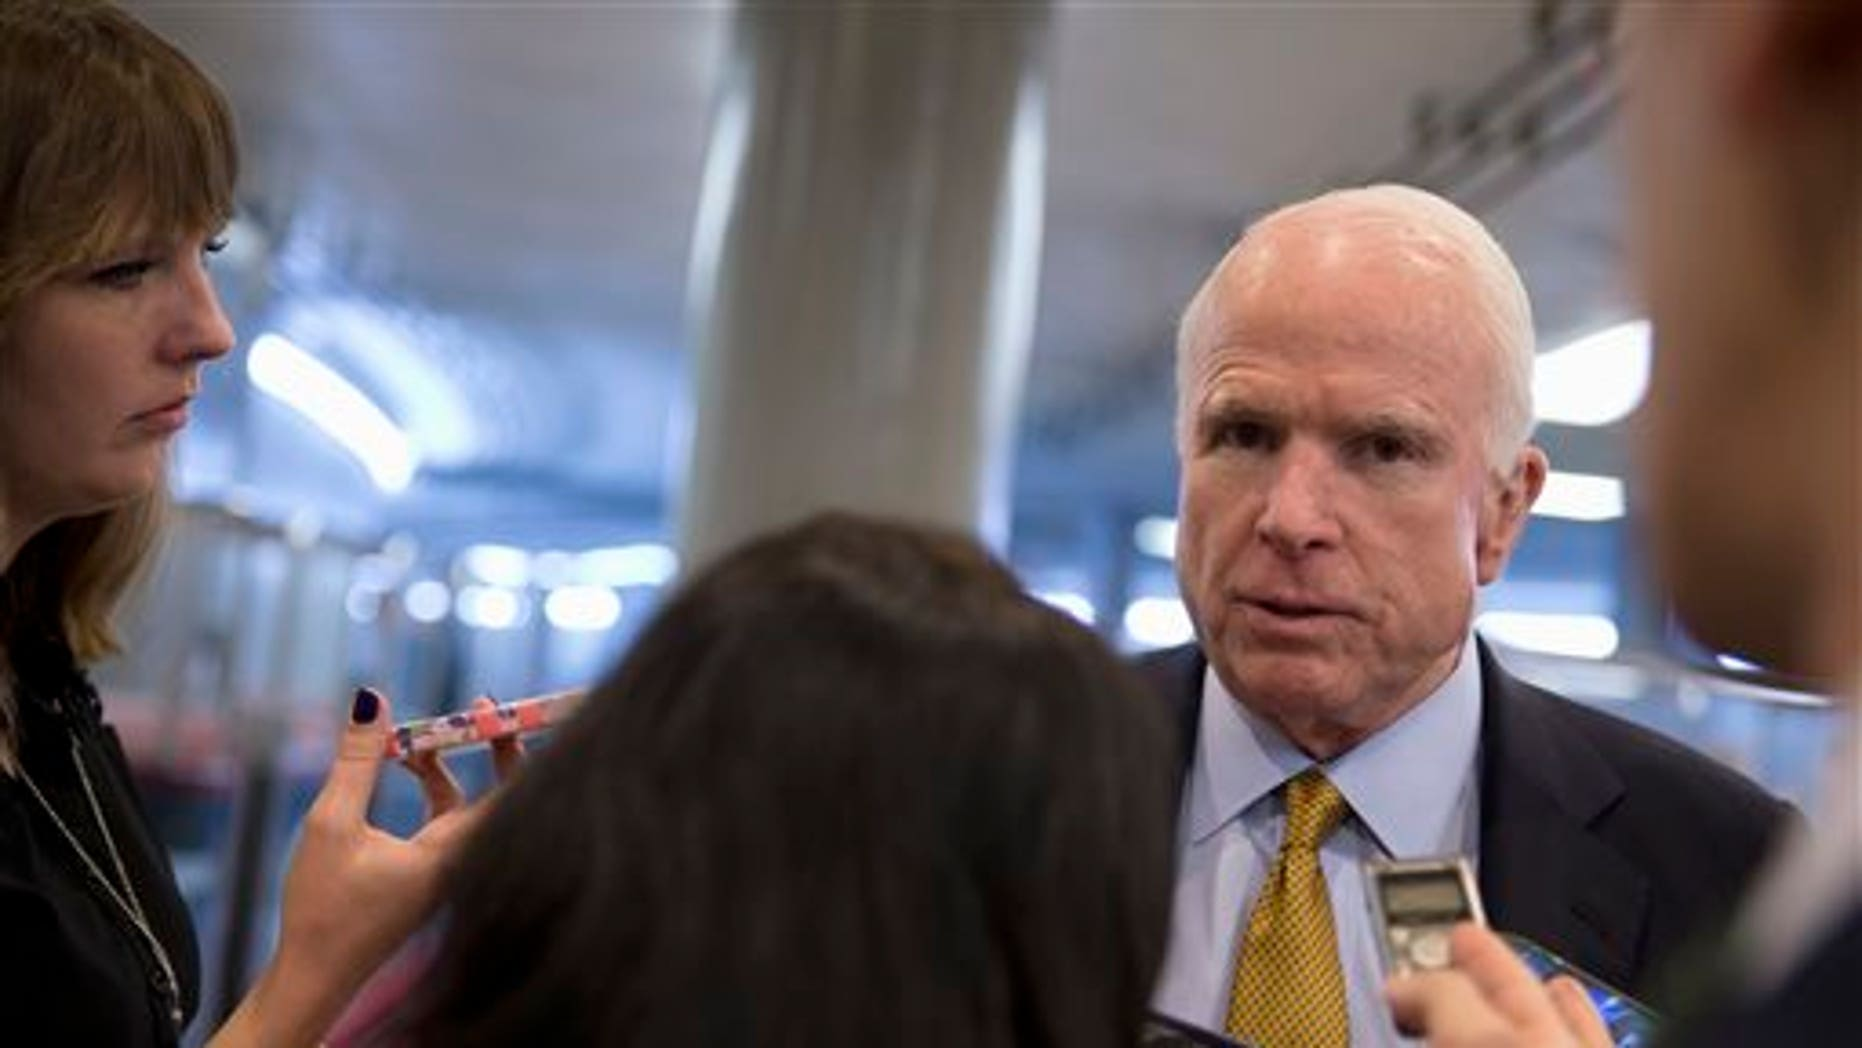 In this Oct. 20, 2015, photo, Senate Armed Service Committee Chairman Sen. John McCain, R-Ariz., talks to reporters near the subway on Capitol Hill in Washington. In the fight against the Islamic State group, members of Congress talk tough on extremism, but most want nothing to do with voting to legally authorize the military campaign, preferring to let the president take ownership of the mission. (AP Photo/Carolyn Kaster)